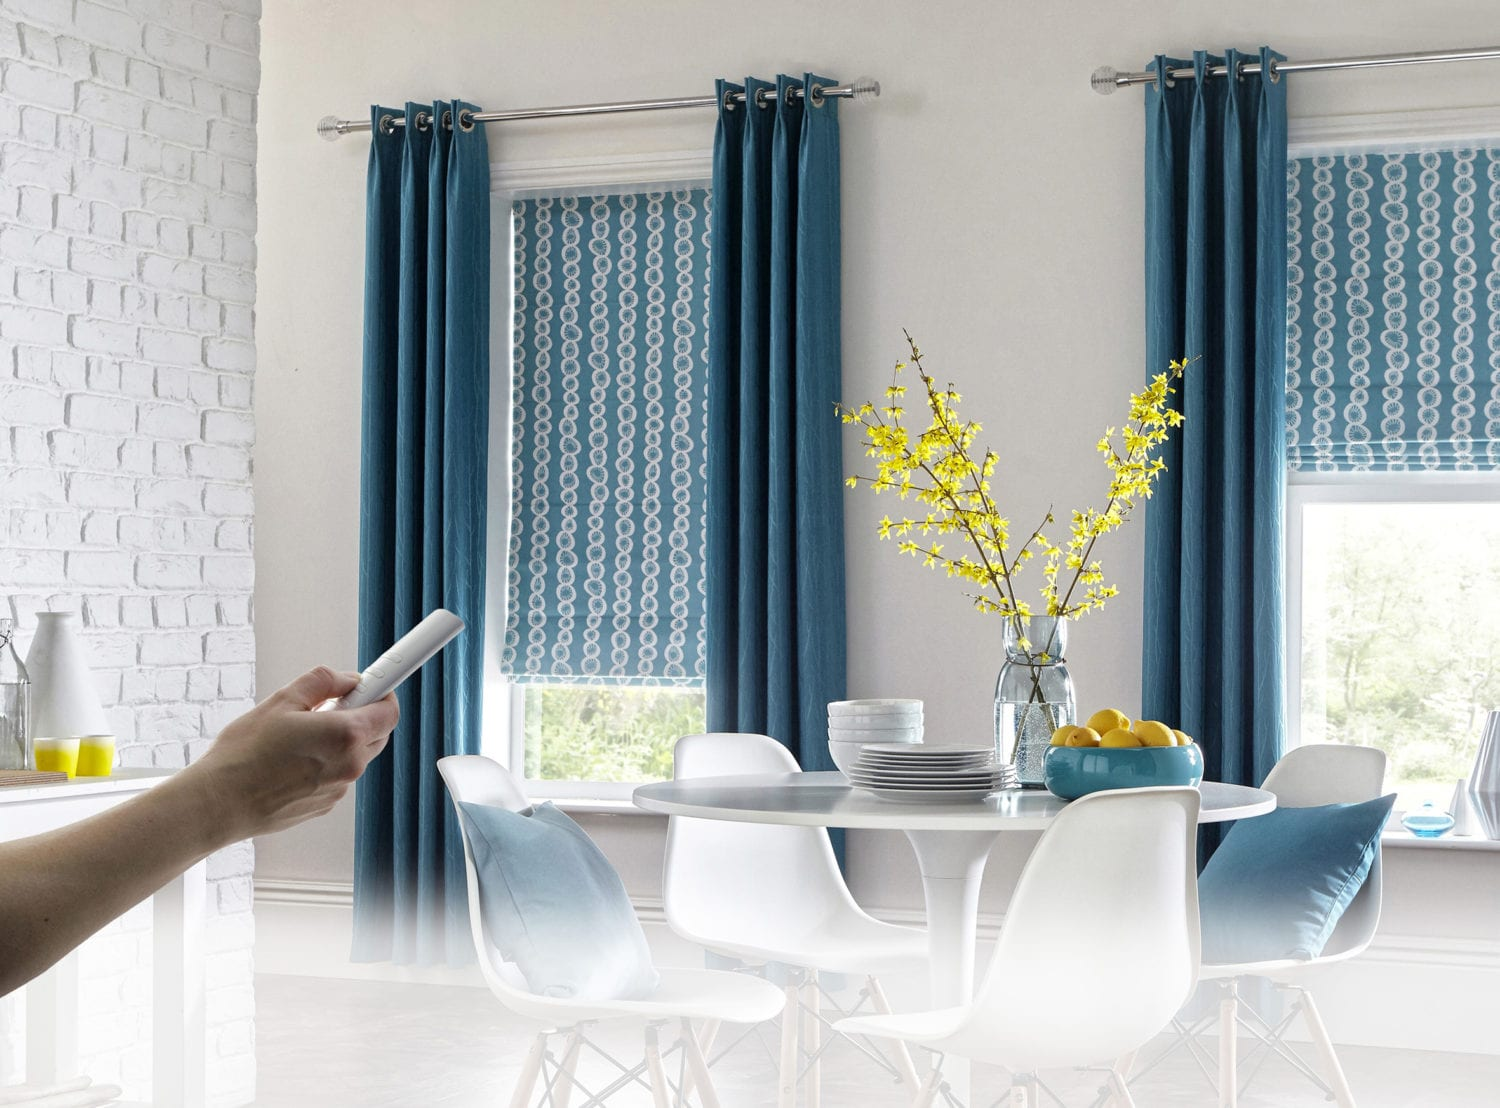 0761fc534e24 Sherwood-Teal-Curtain_Nirvana-Cobalt-ROMAN-POWERSHADE · powershade  motorised blinds bolton